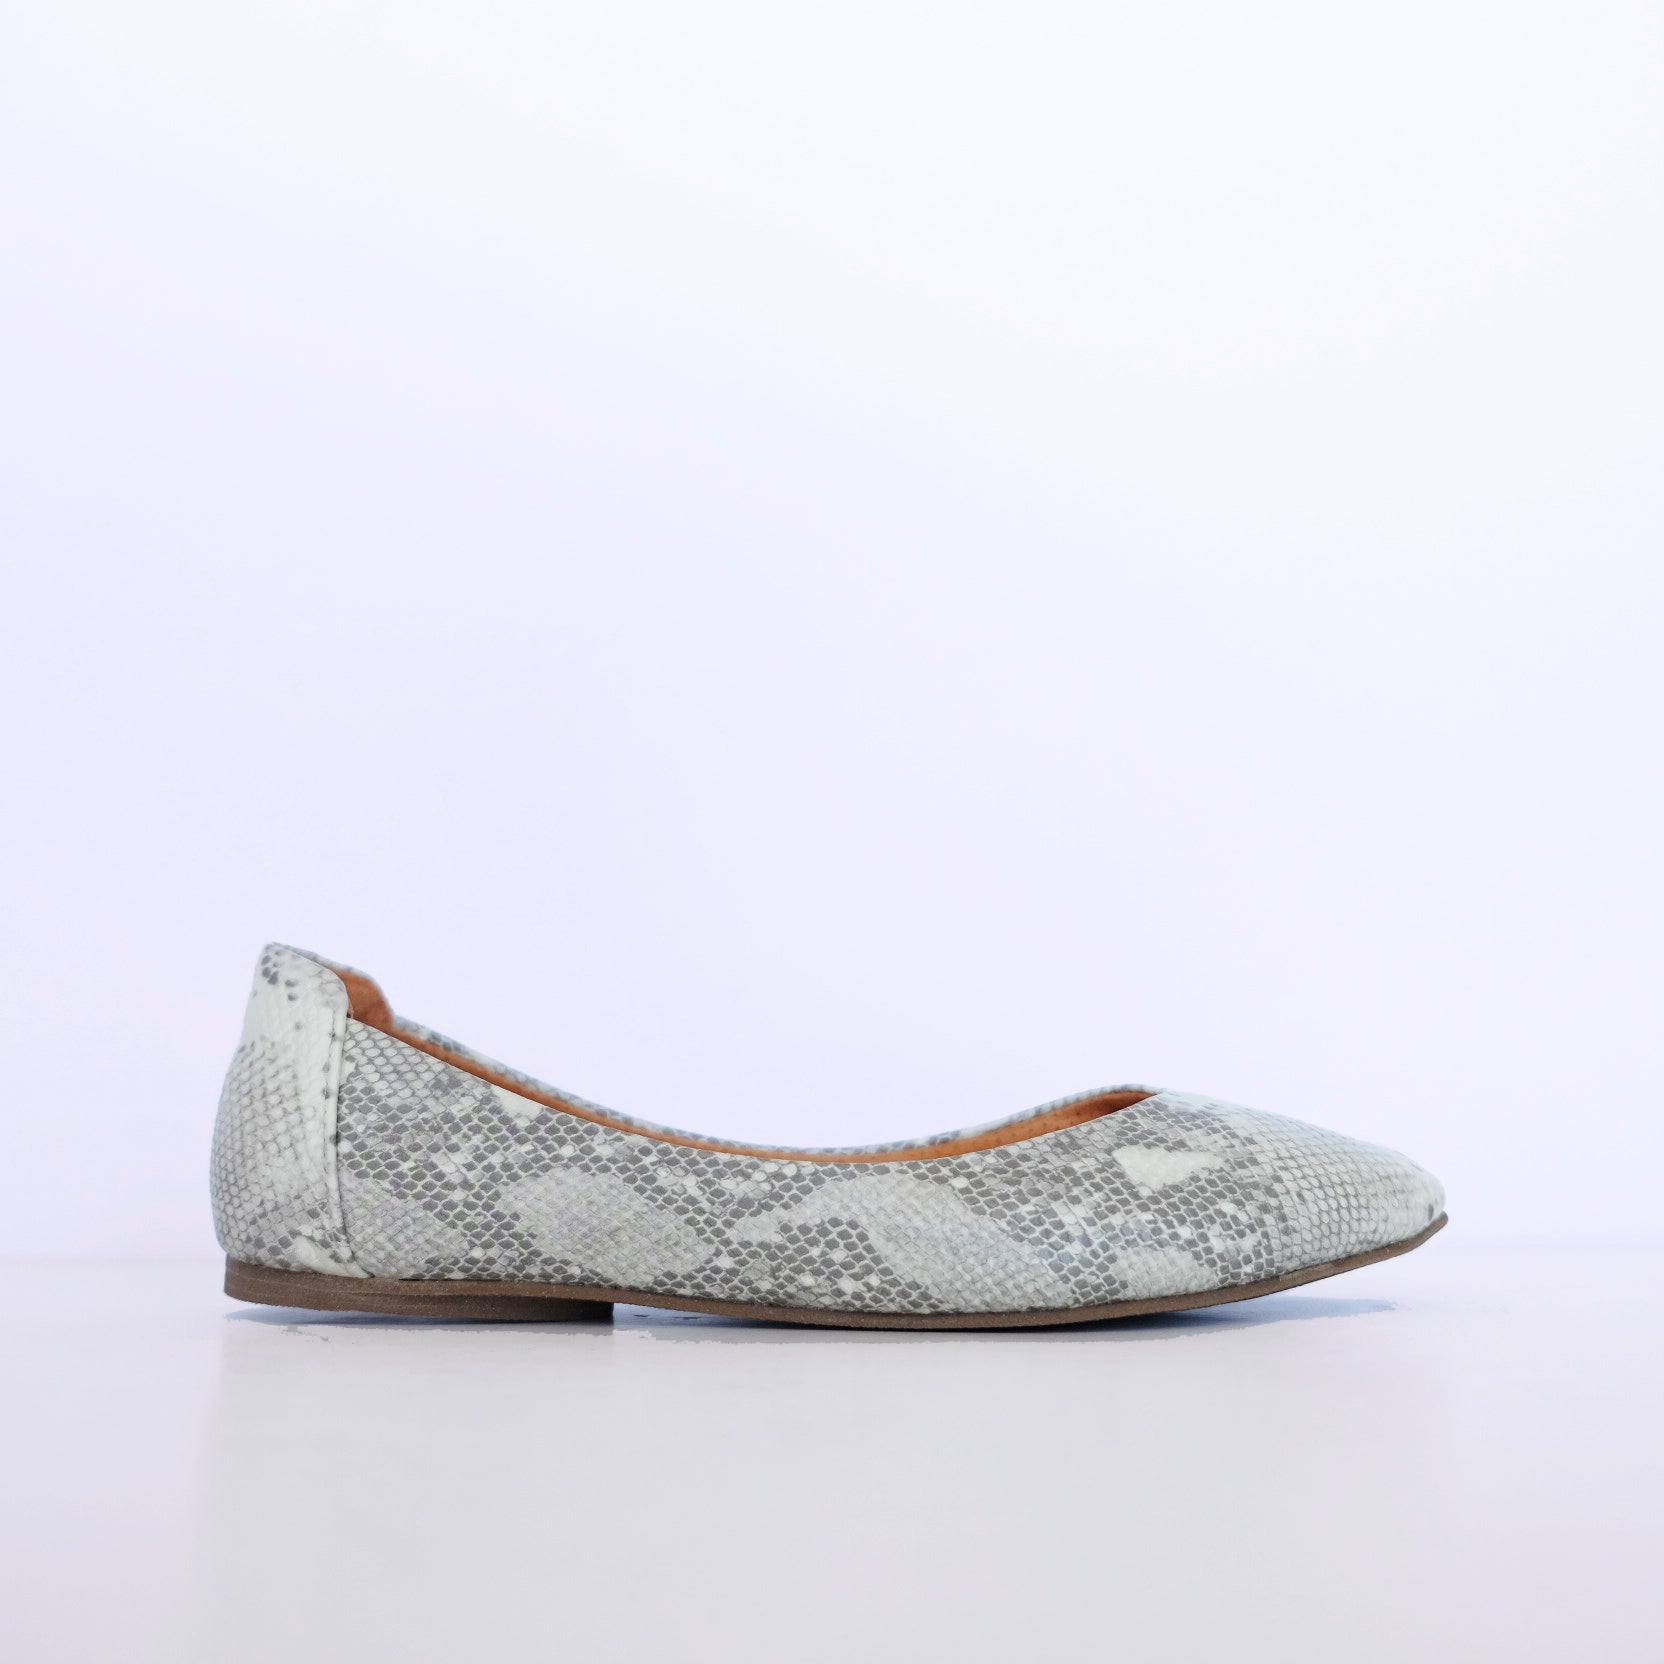 PRESCOT SNAKE: Taupe